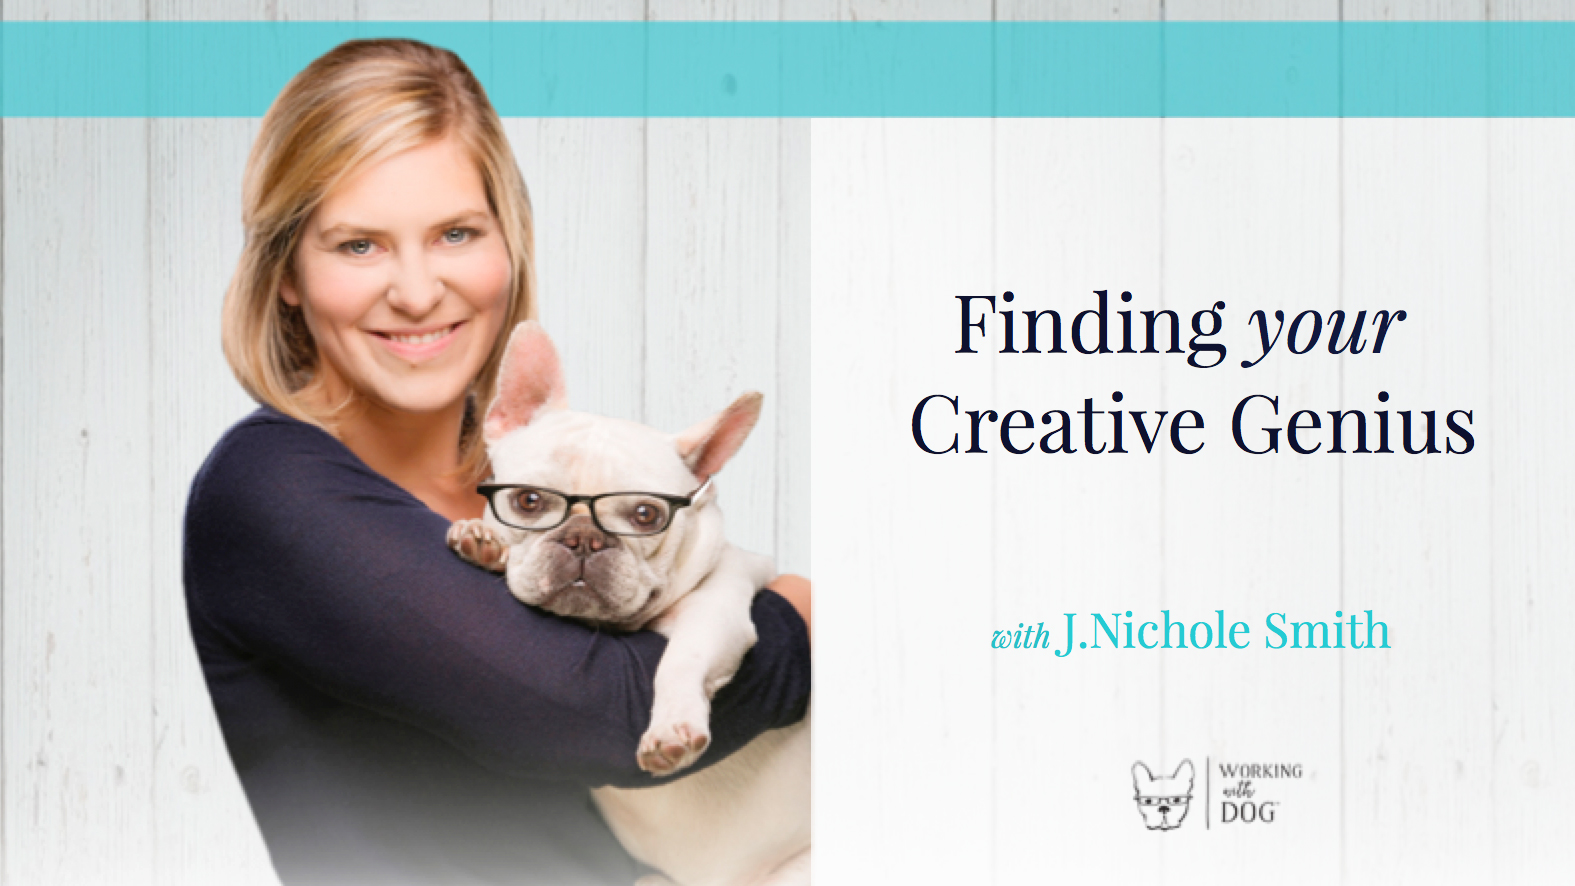 Finding your Creative Genius with J.Nichole Smith